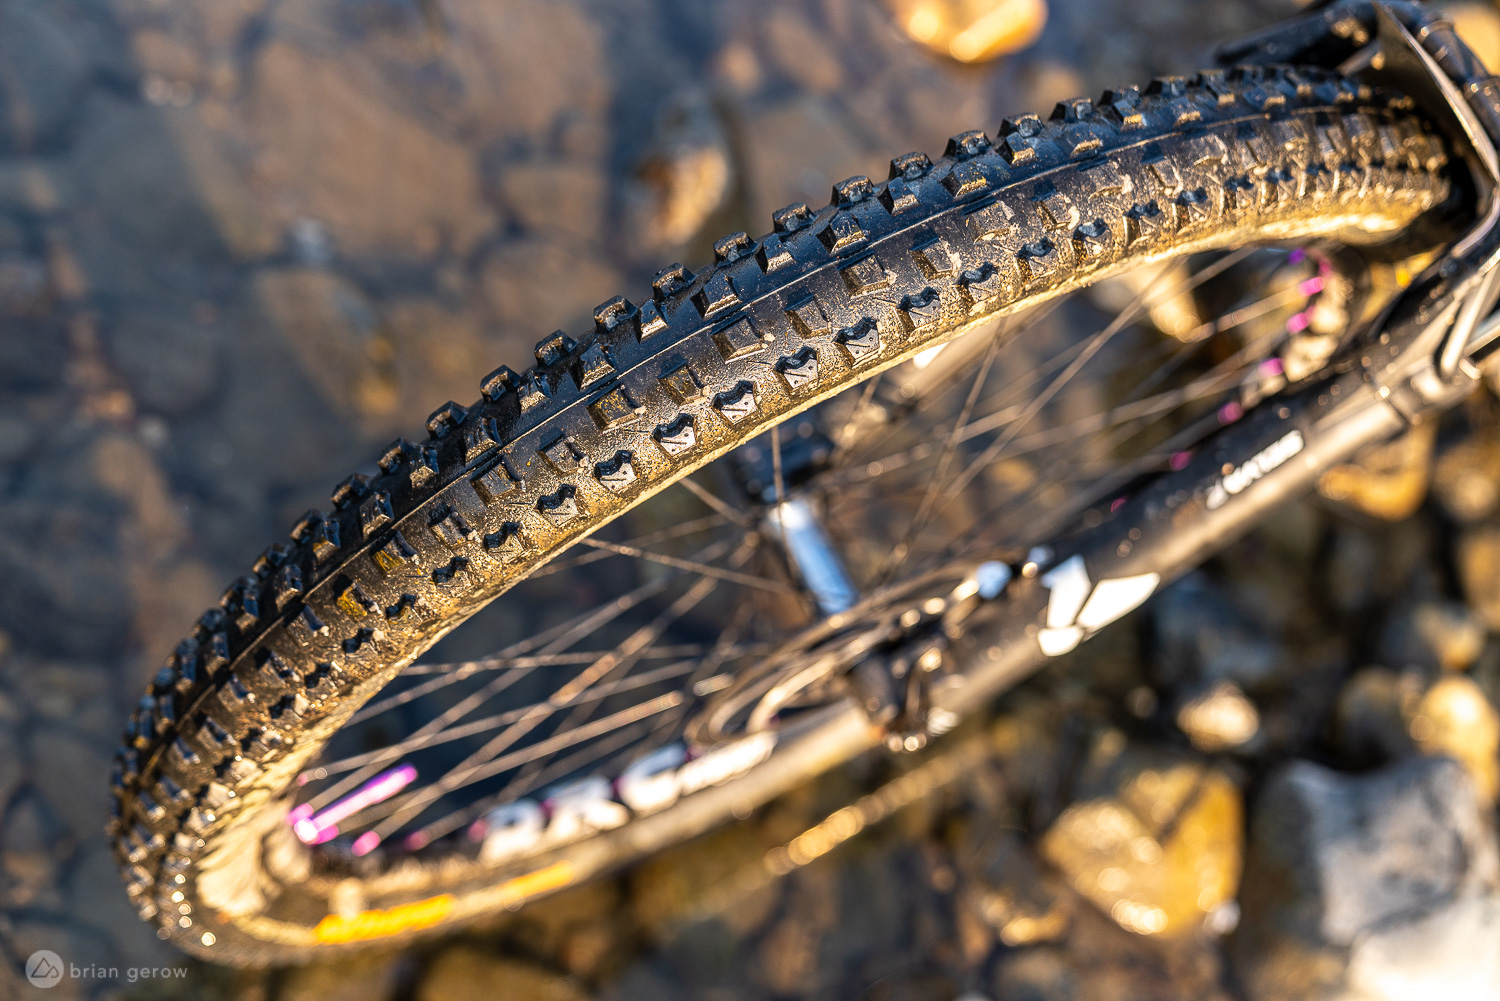 Grippiest MTB Tires of the Year: Continental Der Baron and Der Kaiser Combo [Review] - Singletracks Mountain Bike News